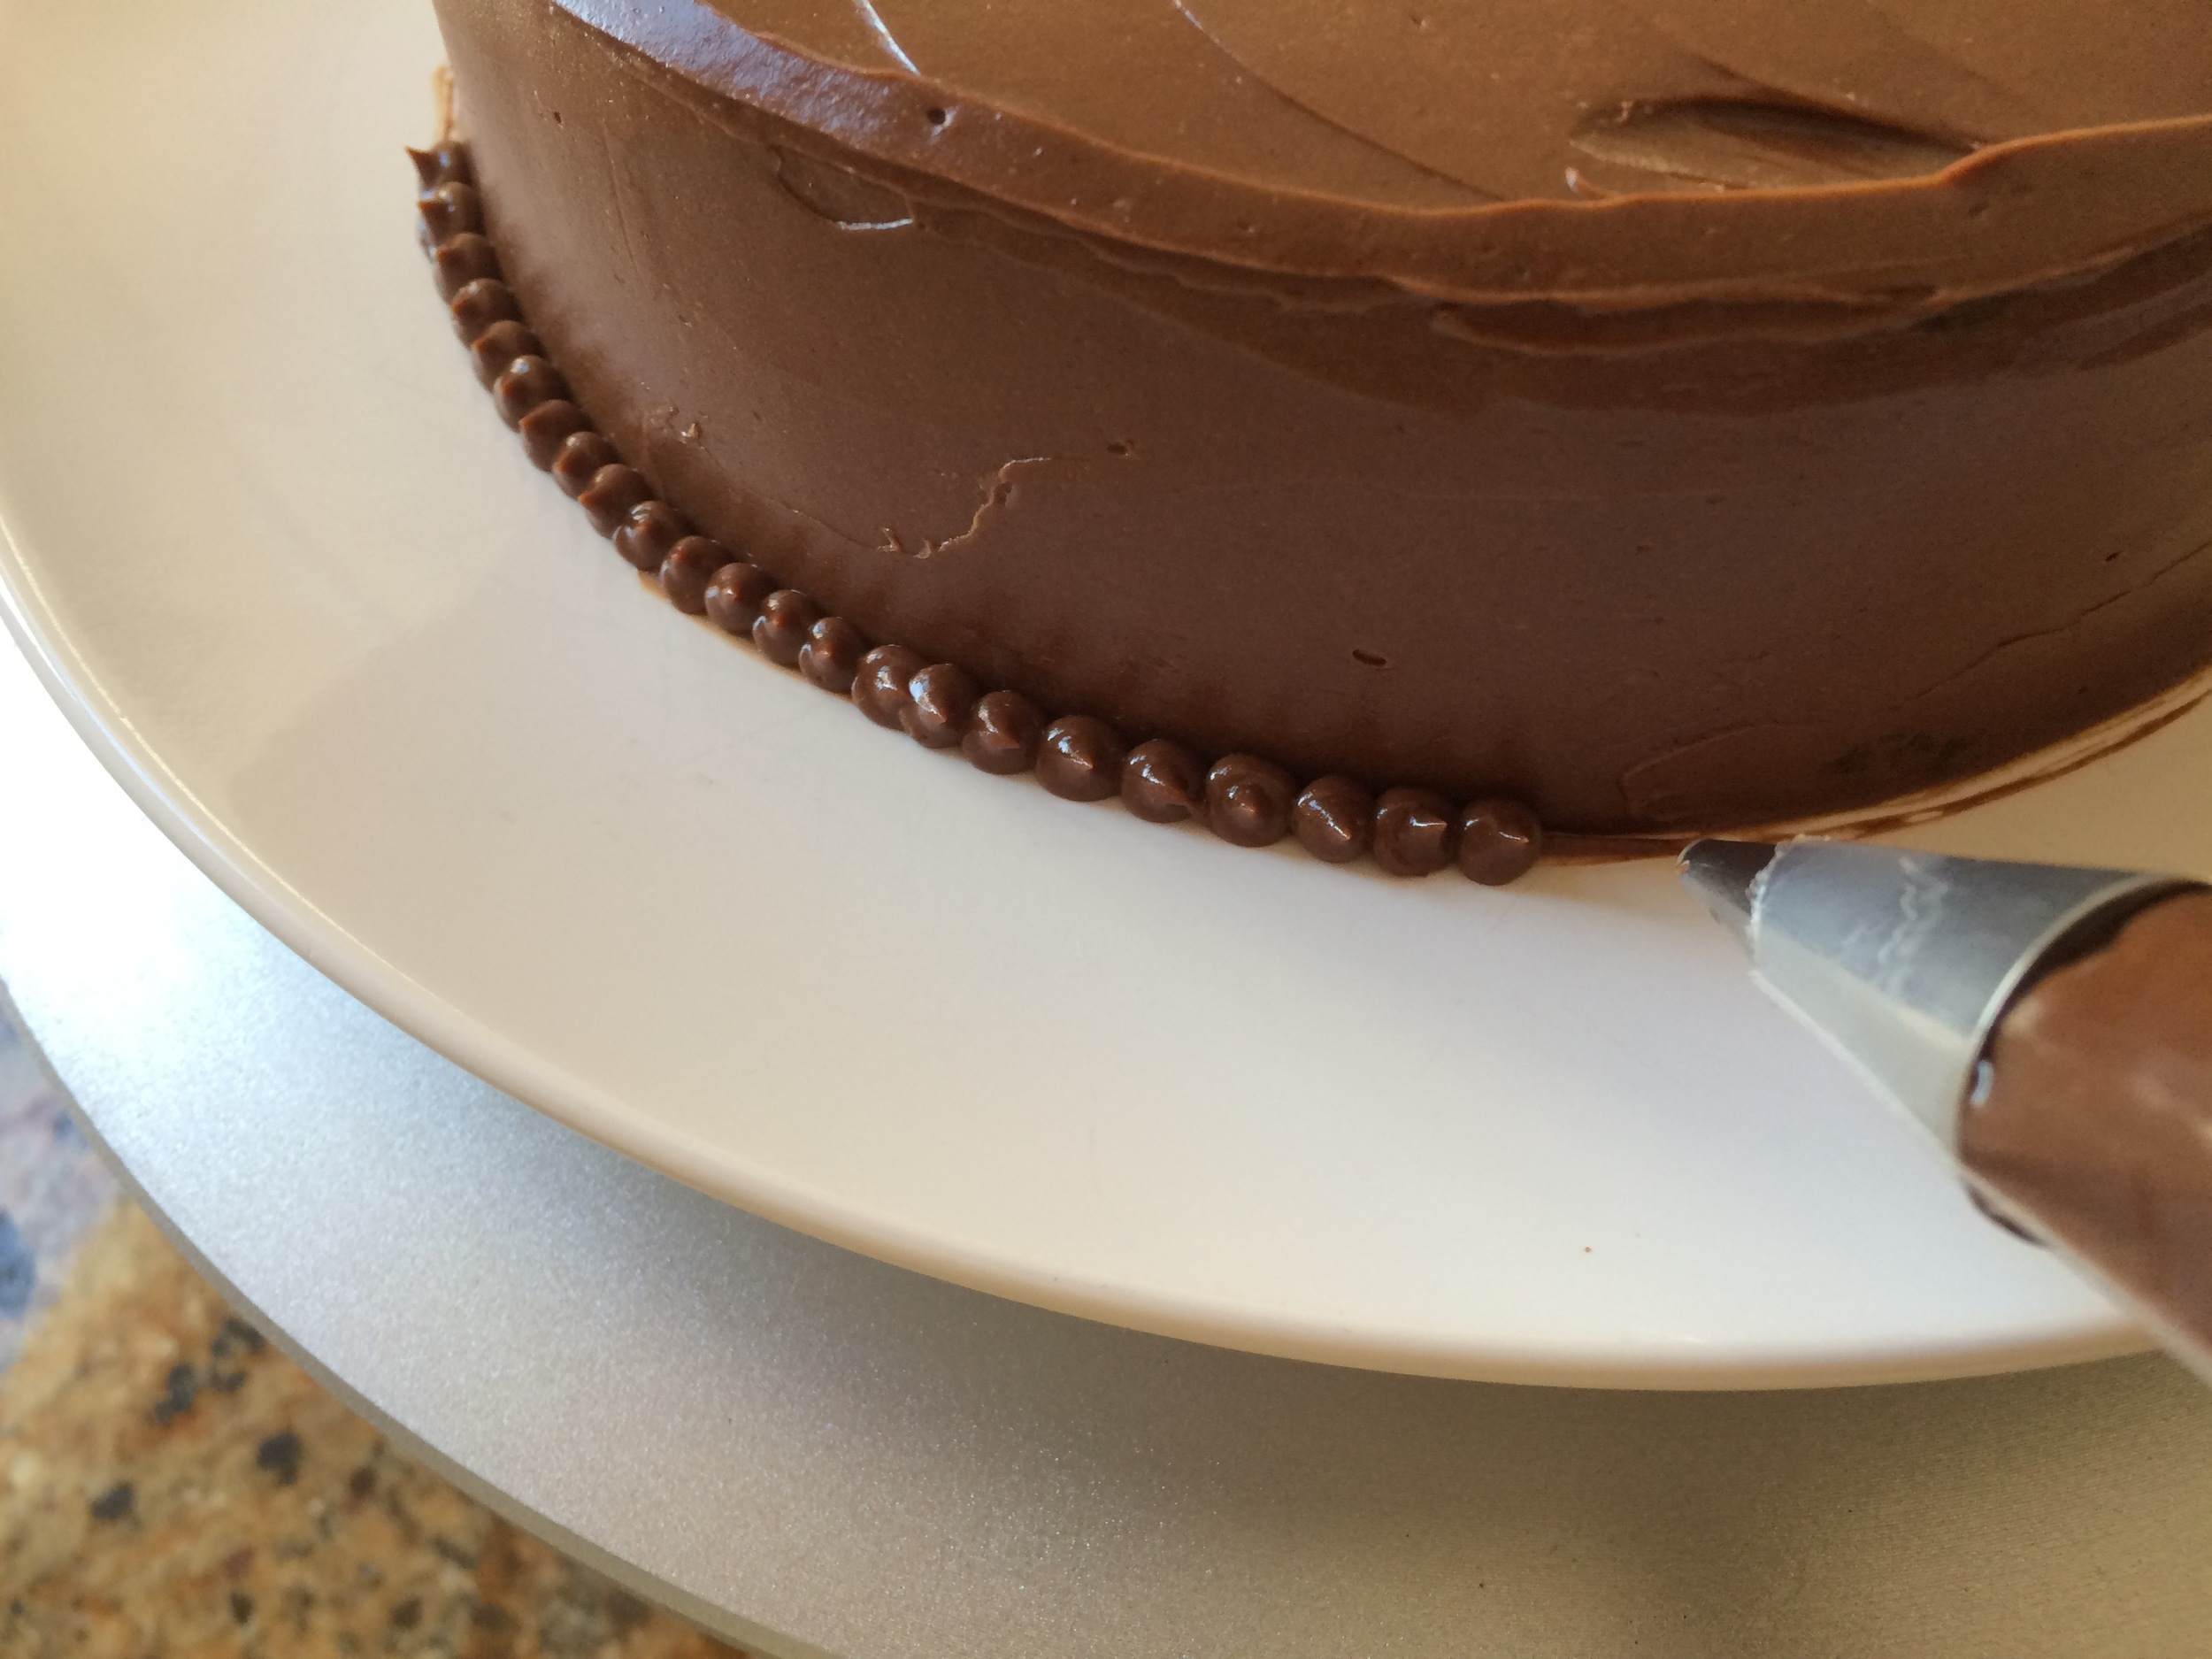 Piping along the edge, or adding a decorative layer of almonds, candies, or other elements makes the plate look clean.